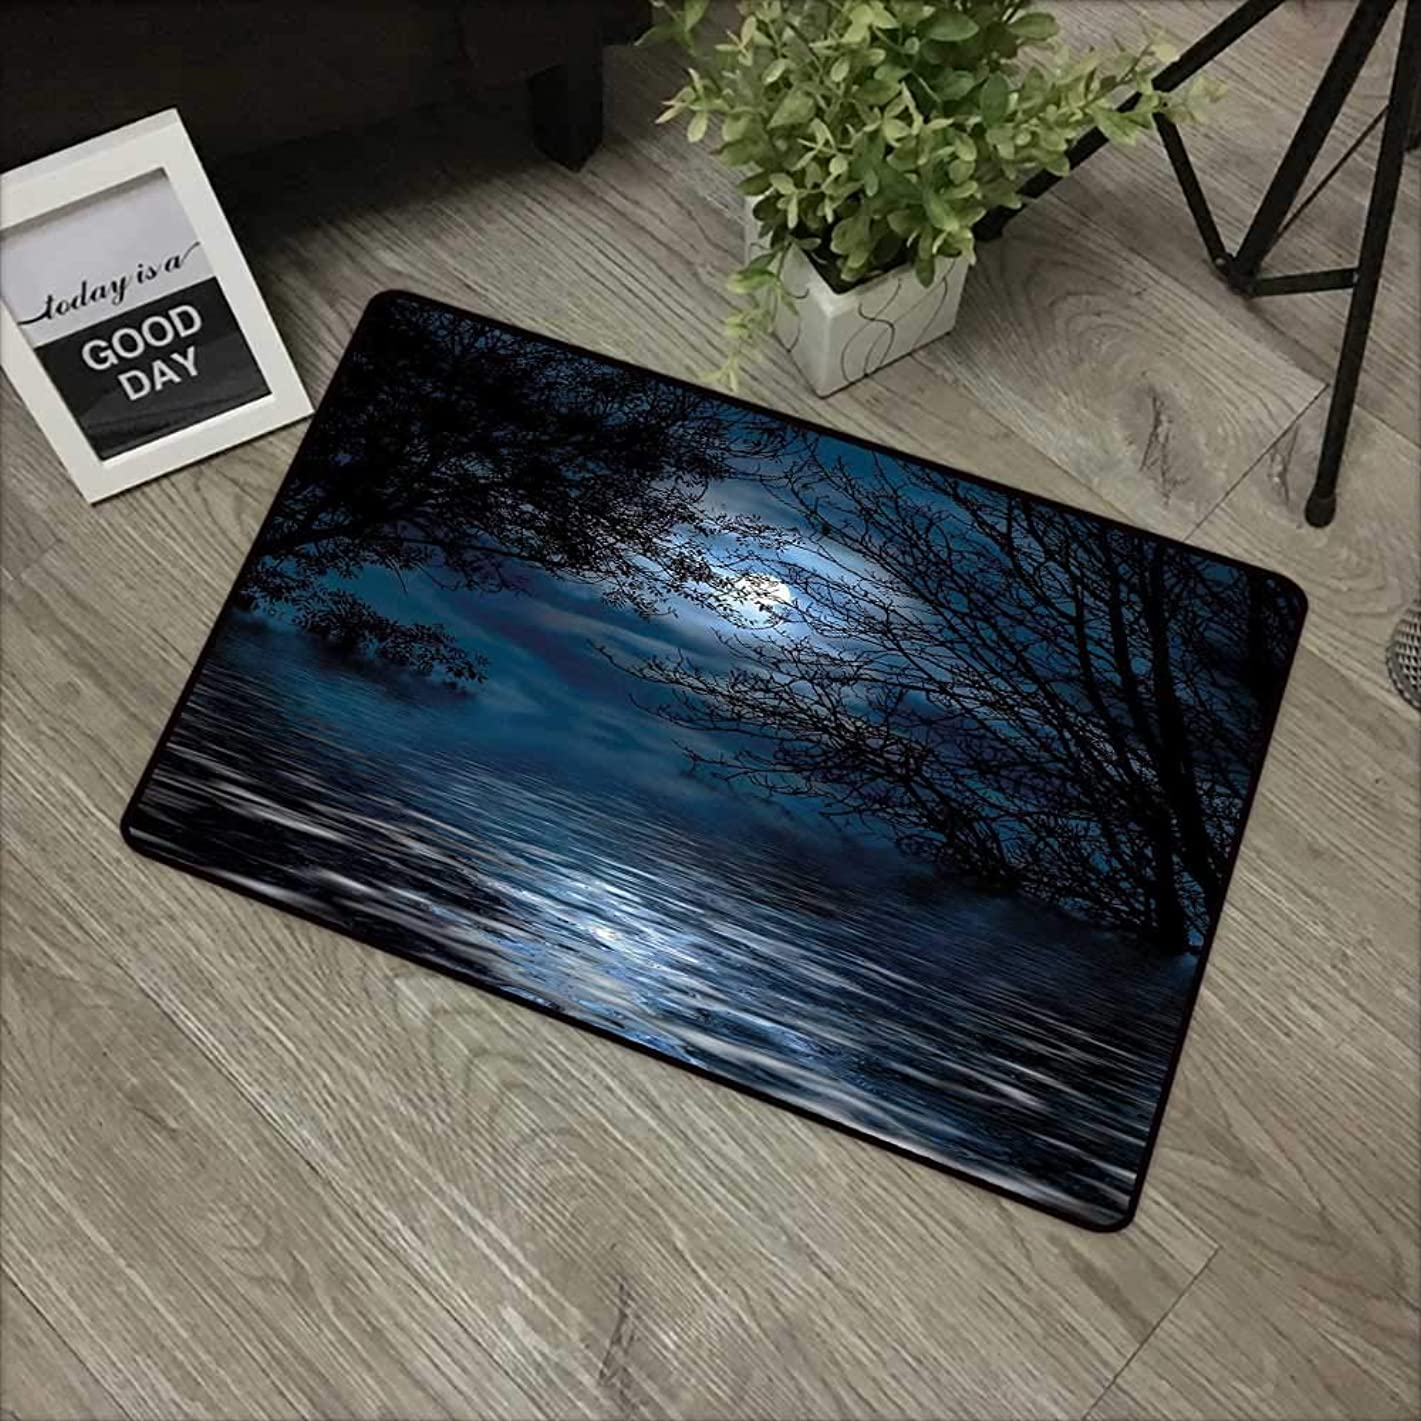 Buck Haggai Indoor Outdoor Floor Mats Night Sky,Witchcraft Spell Ceremony Atmosphere Forest Full Moon Branches Image,Light Blue and Black,for Indoor Outdoor Easy Clean Entry Way,30